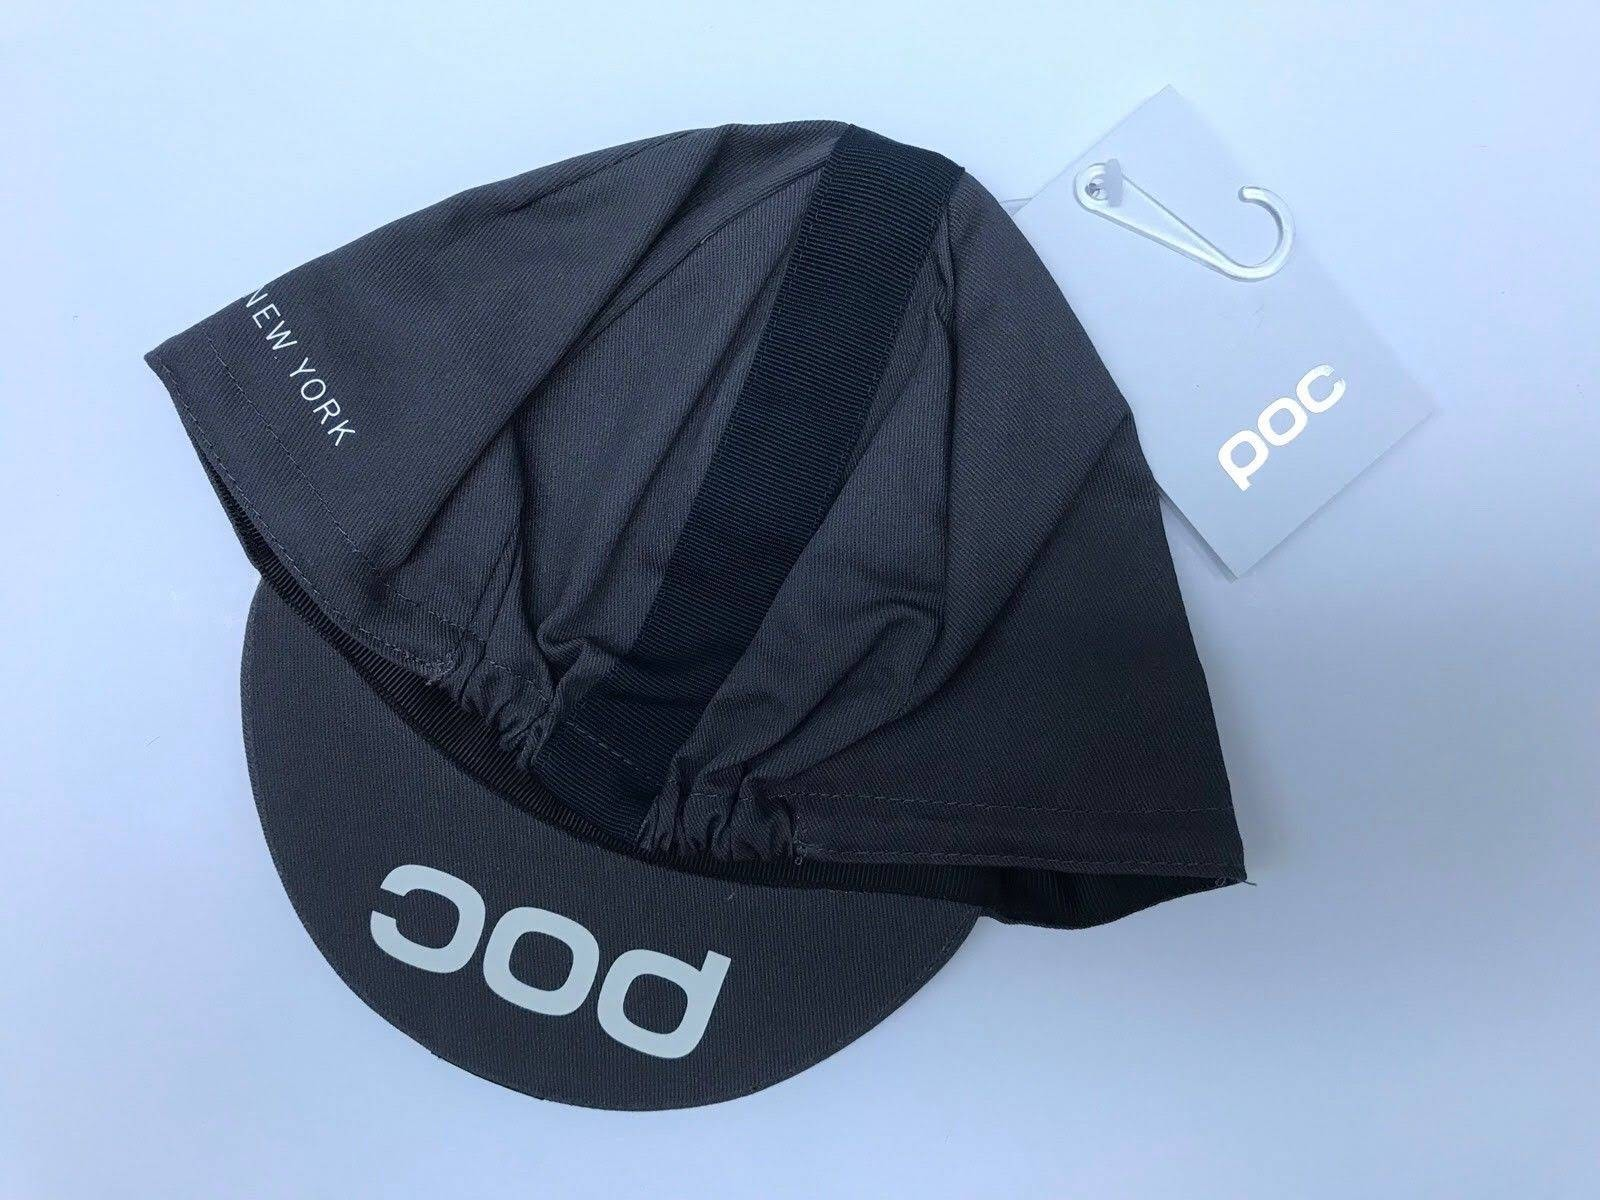 d79a878a6e POC Fondo cap. Condition: New with tags. Size: one size. But I would say  it's far from universal. More like S – M Price: £11.50